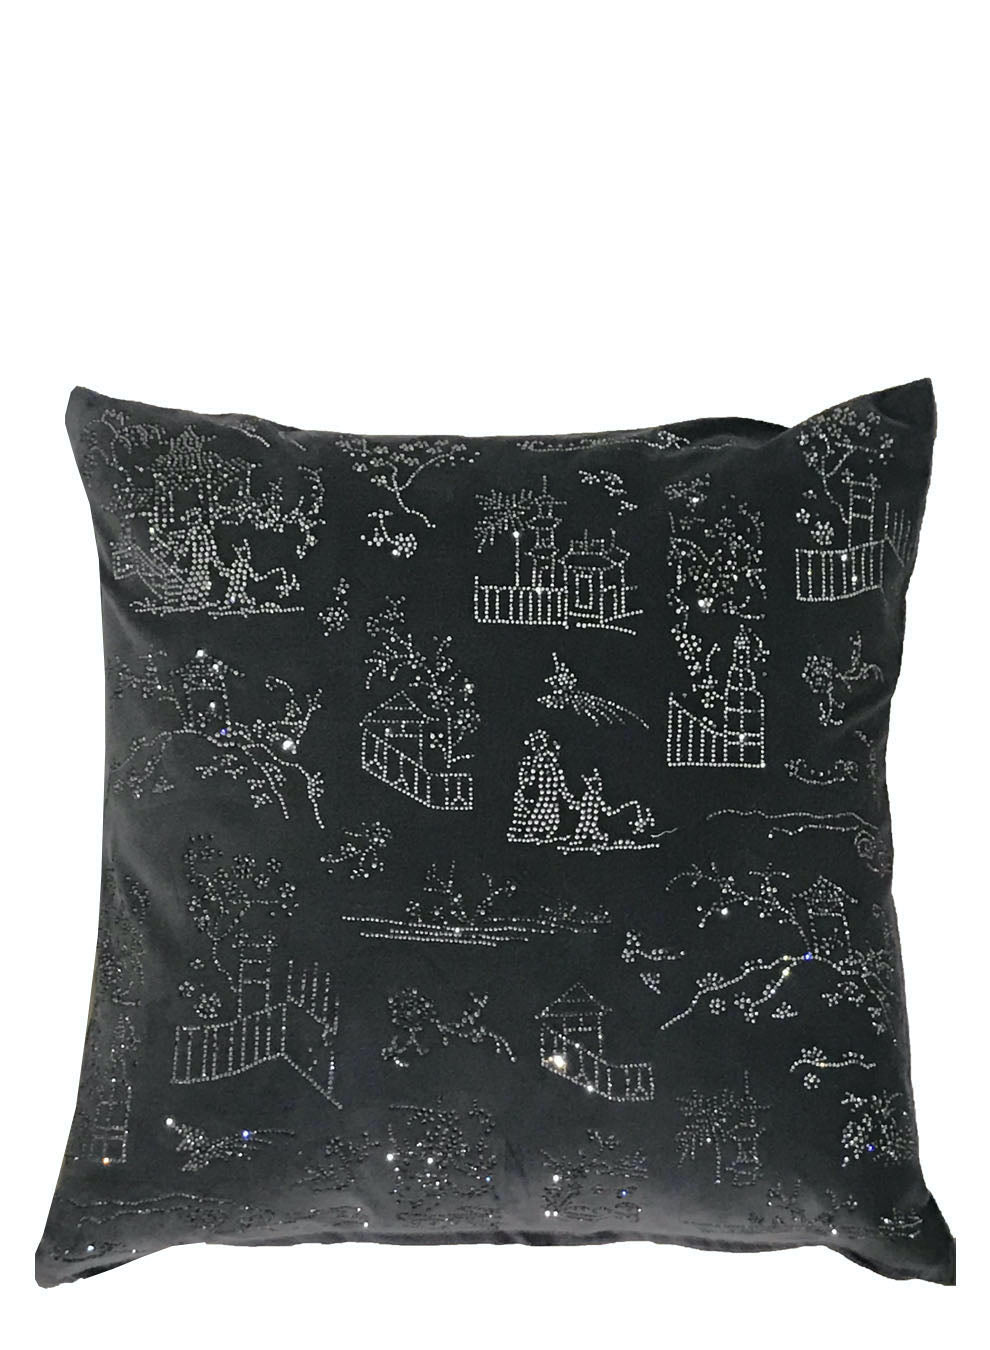 CHINOISERIE CRYSTAL PILLOW - Web Exclusives - Libertine